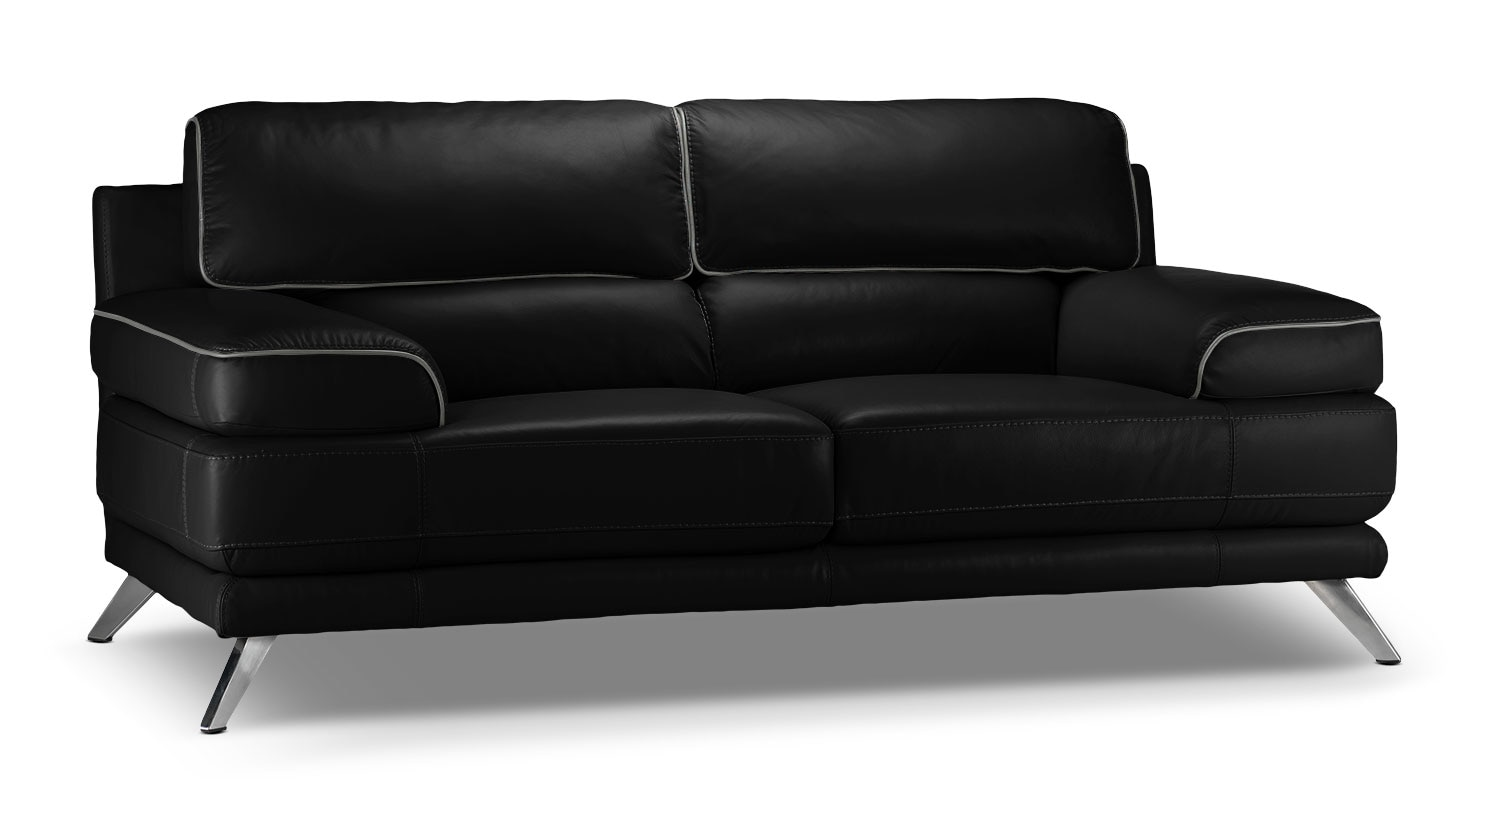 Living Room Furniture - Sutton Loveseat - Black